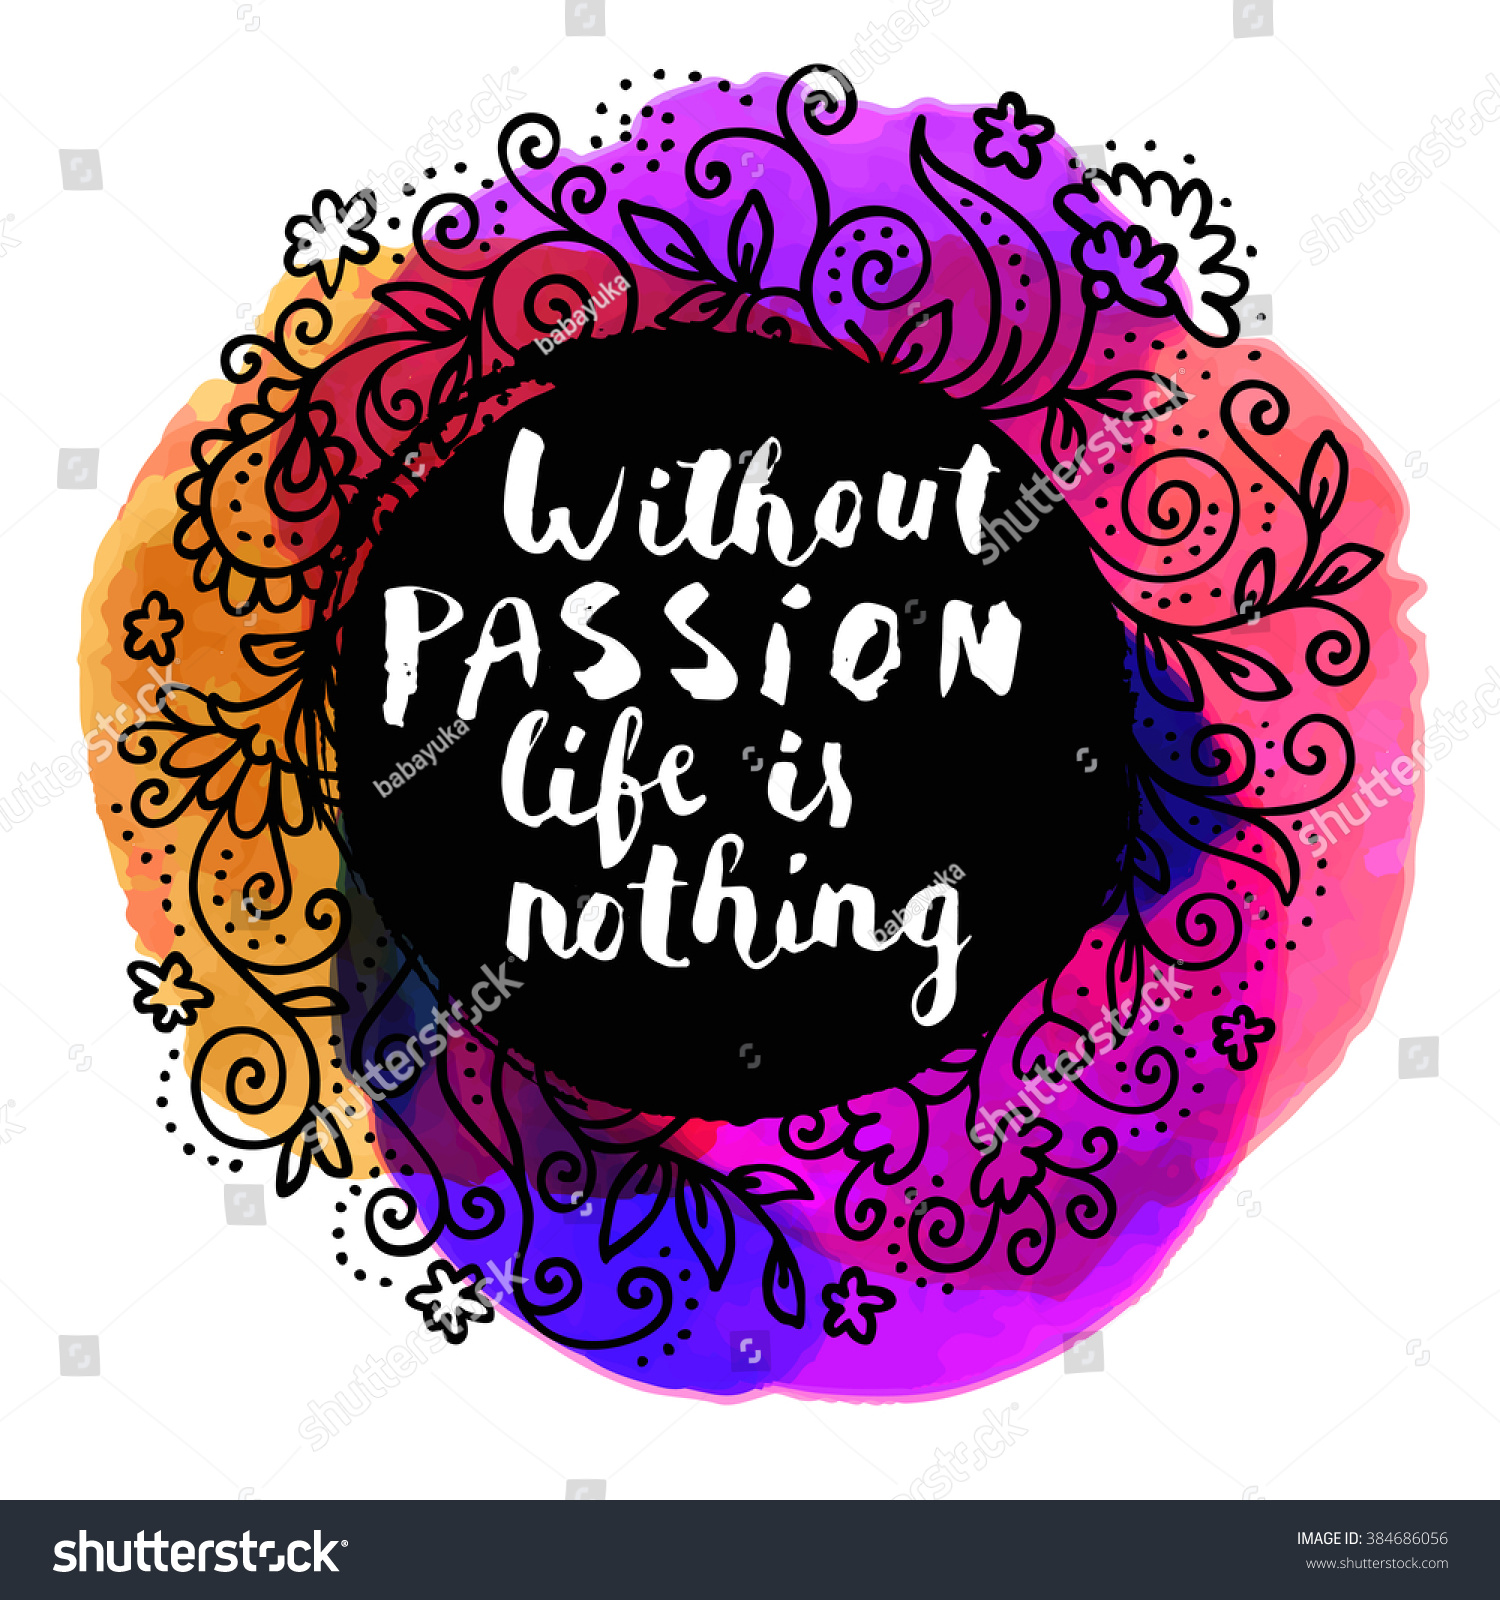 Without Passion Life Nothing Inspirational Quote Stock Vector